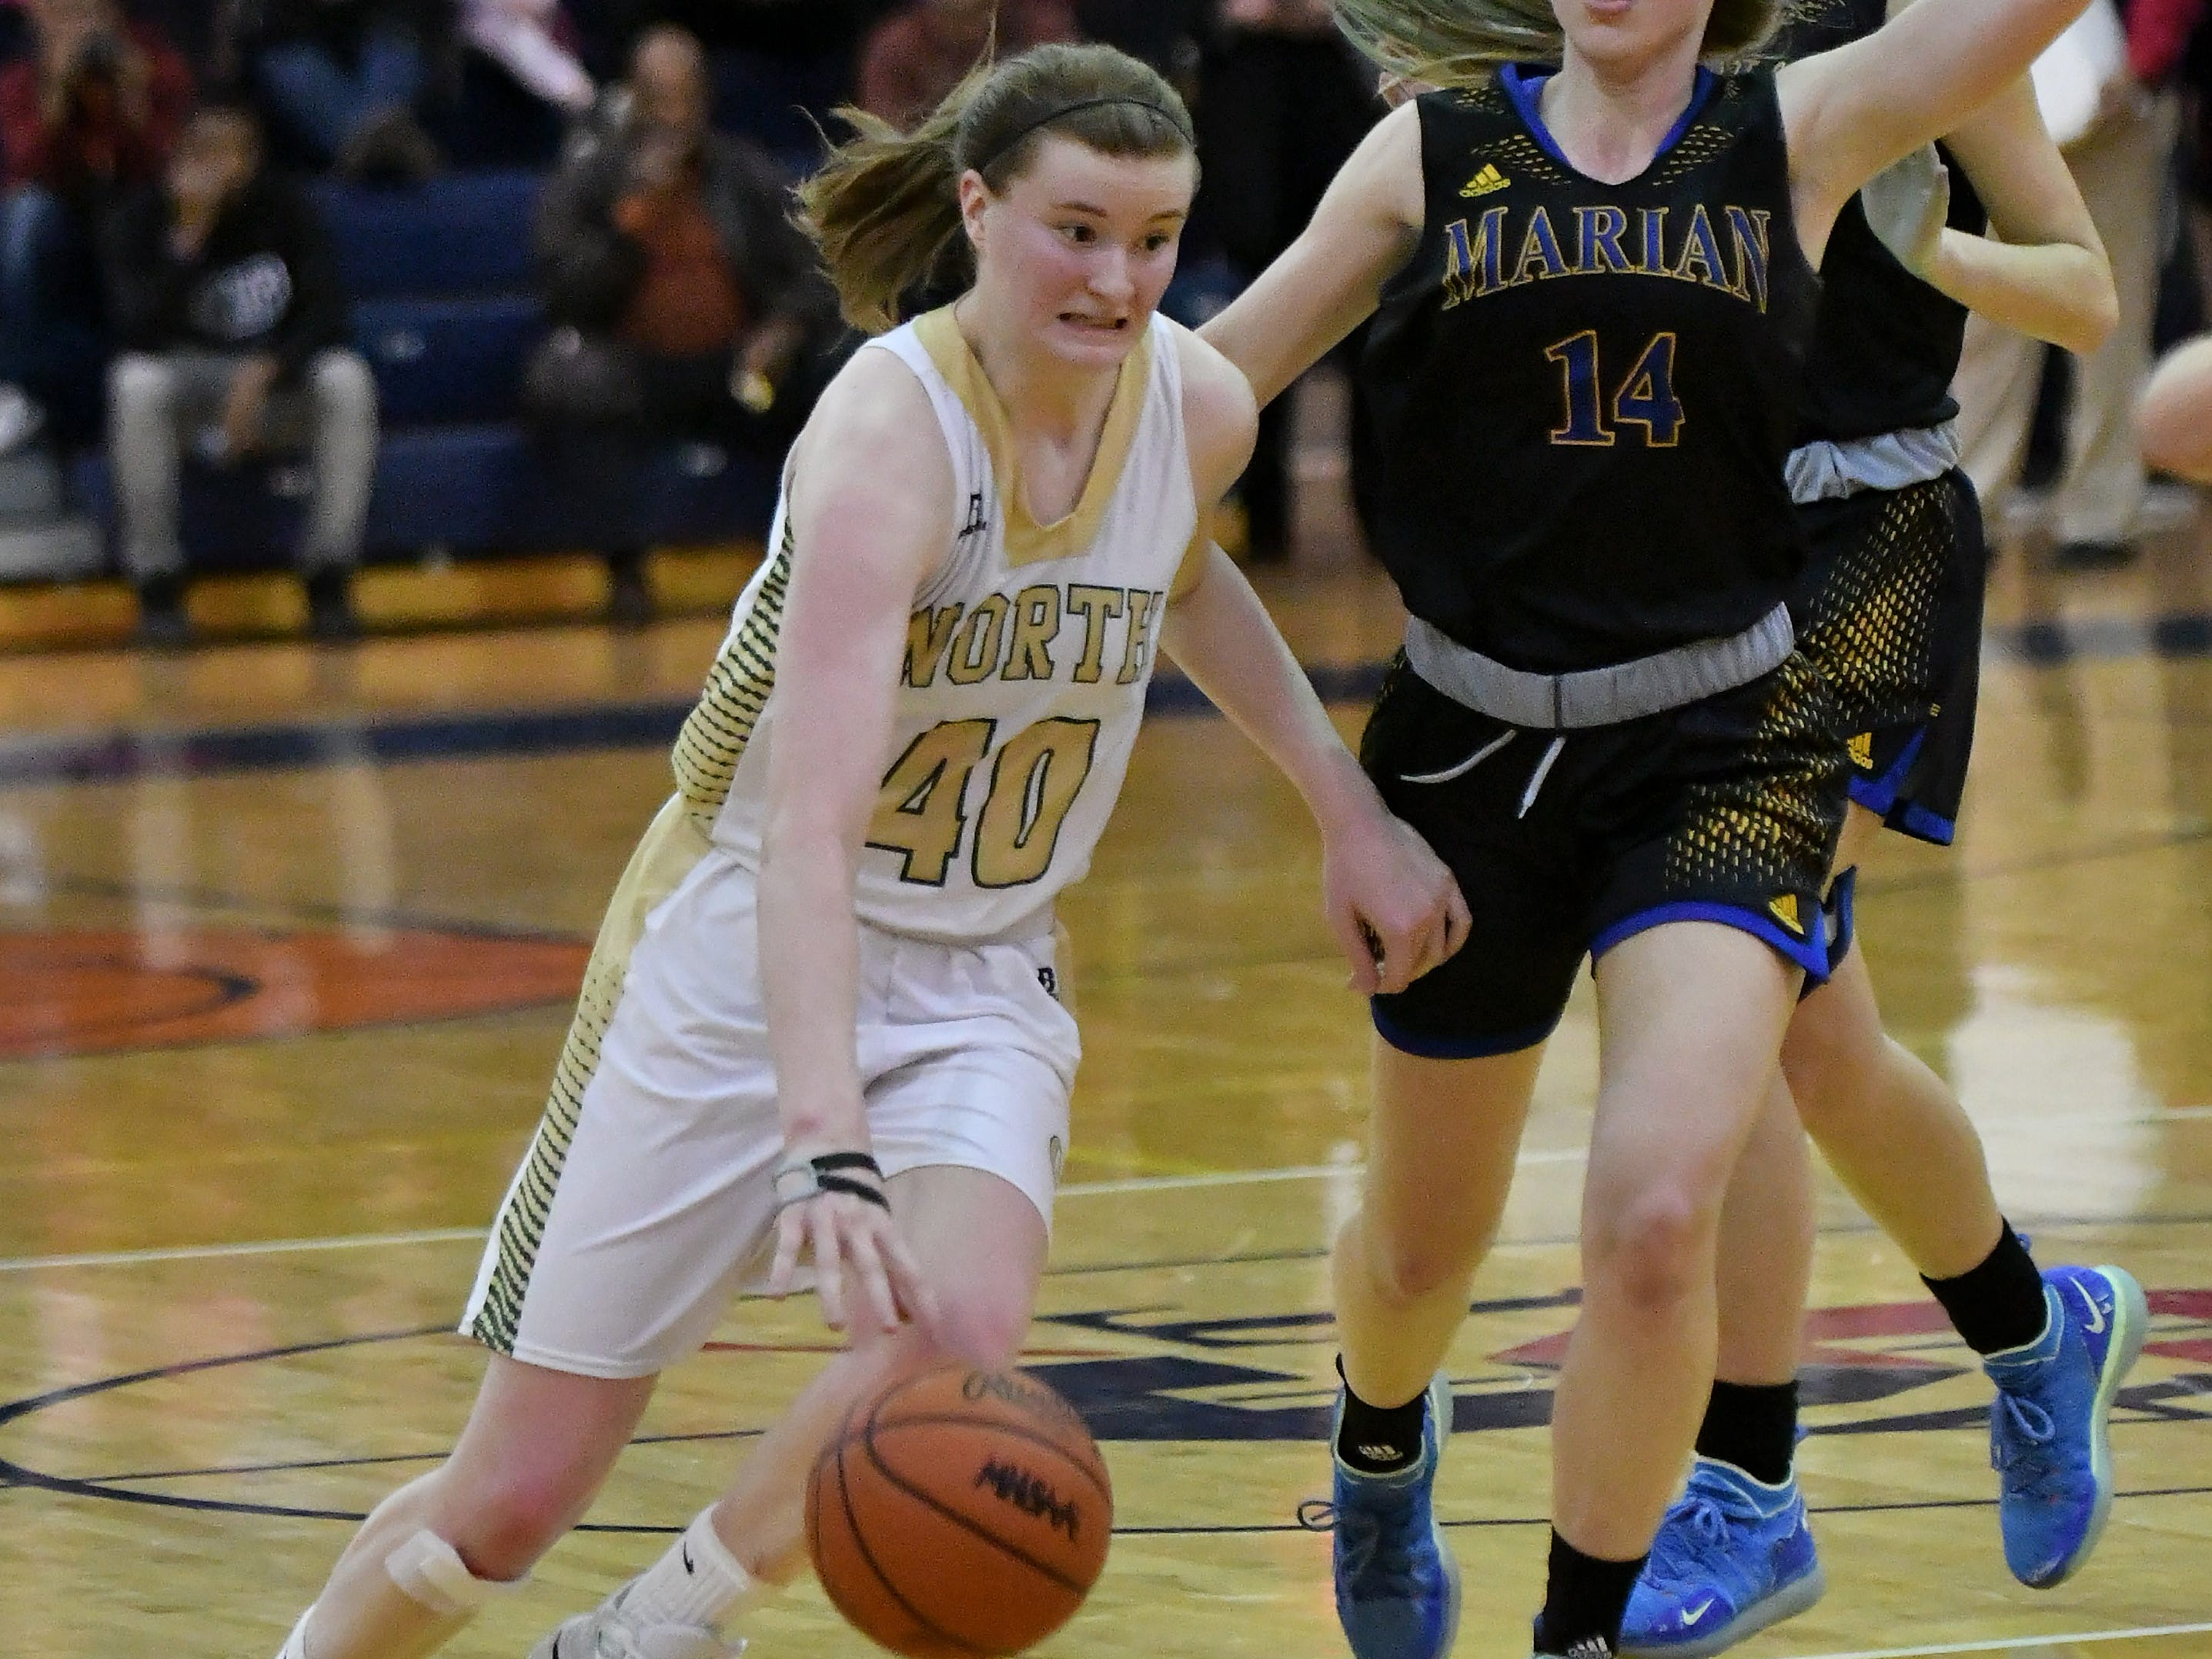 Marian's Grace Rottter (14) chases Grosse Pointe North's Julia Ayrault (40) in the second half.